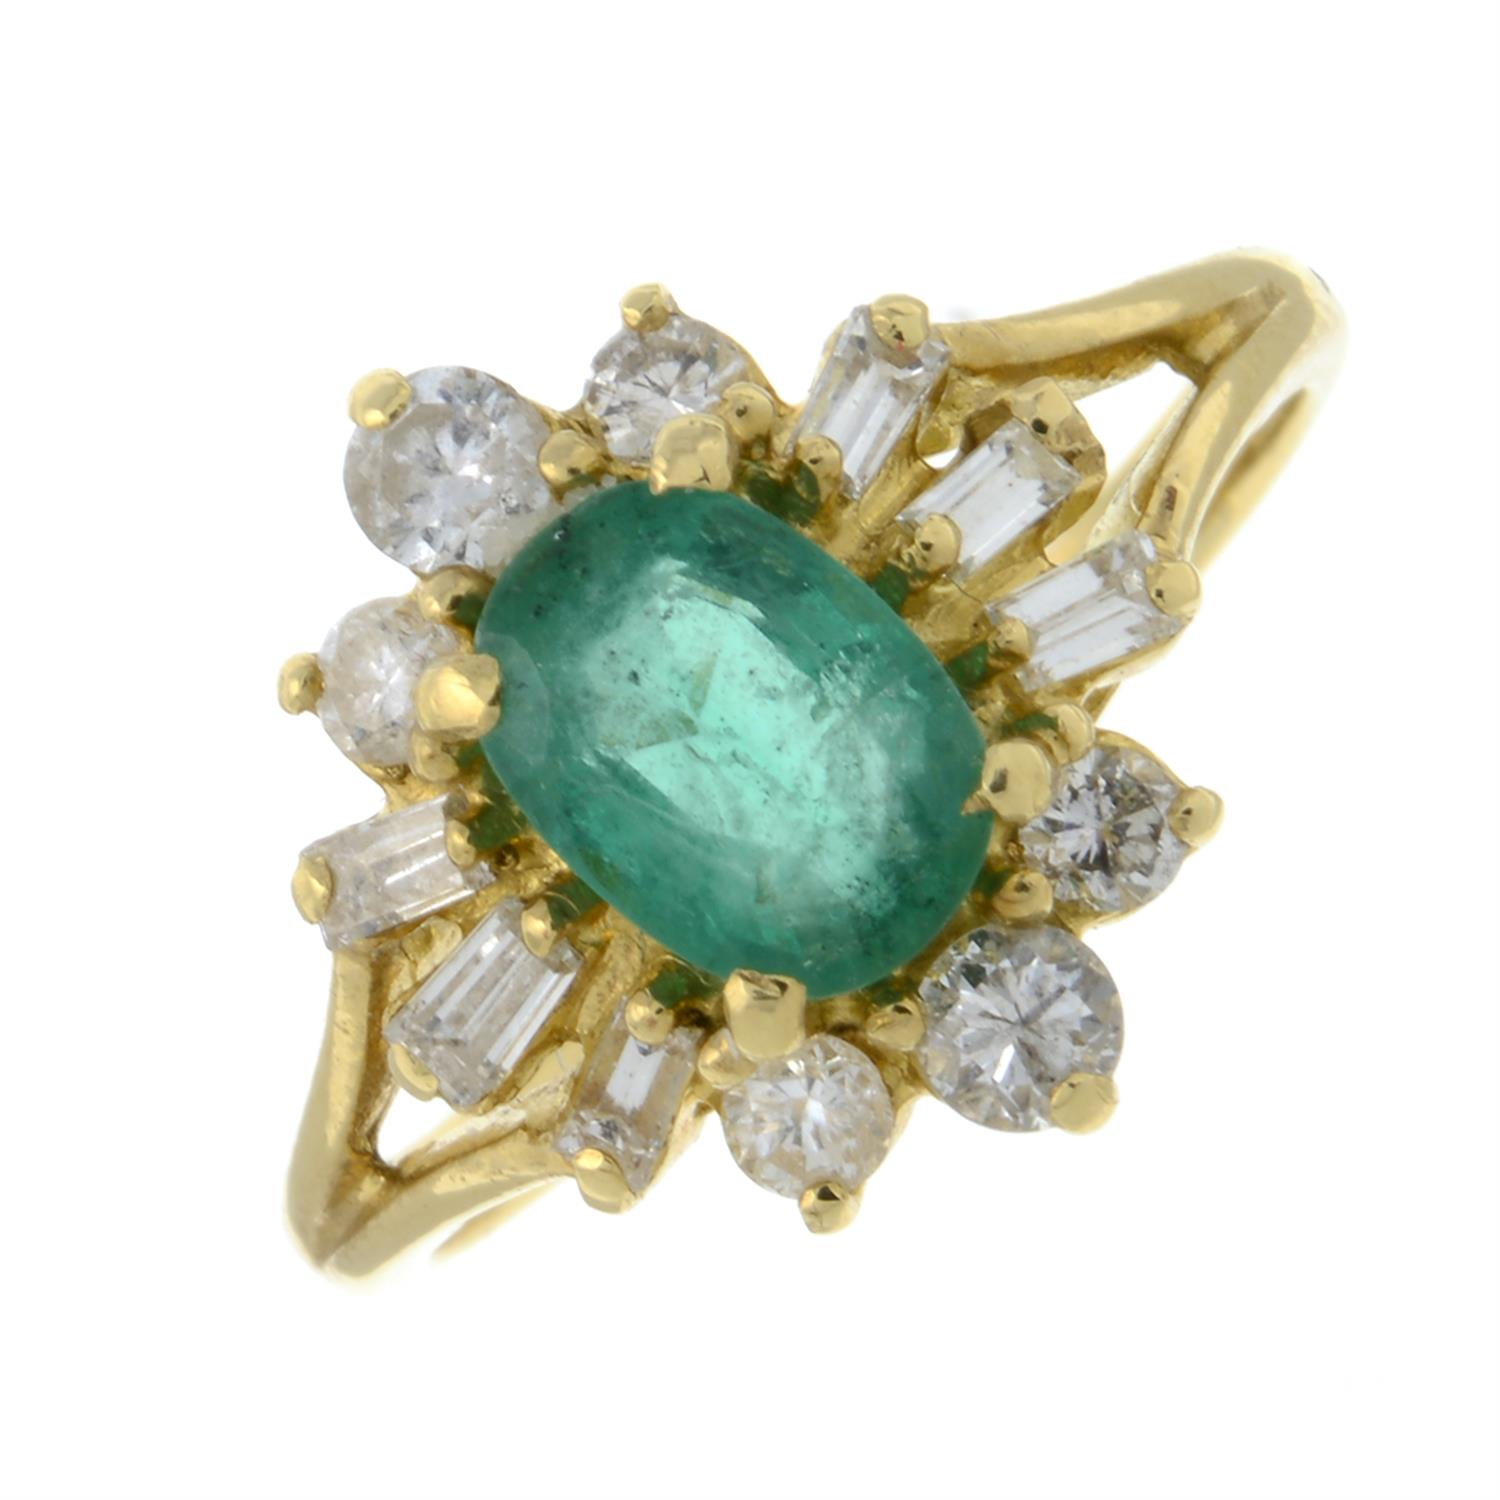 An 18ct gold emerald and vari-cut diamond cluster ring.